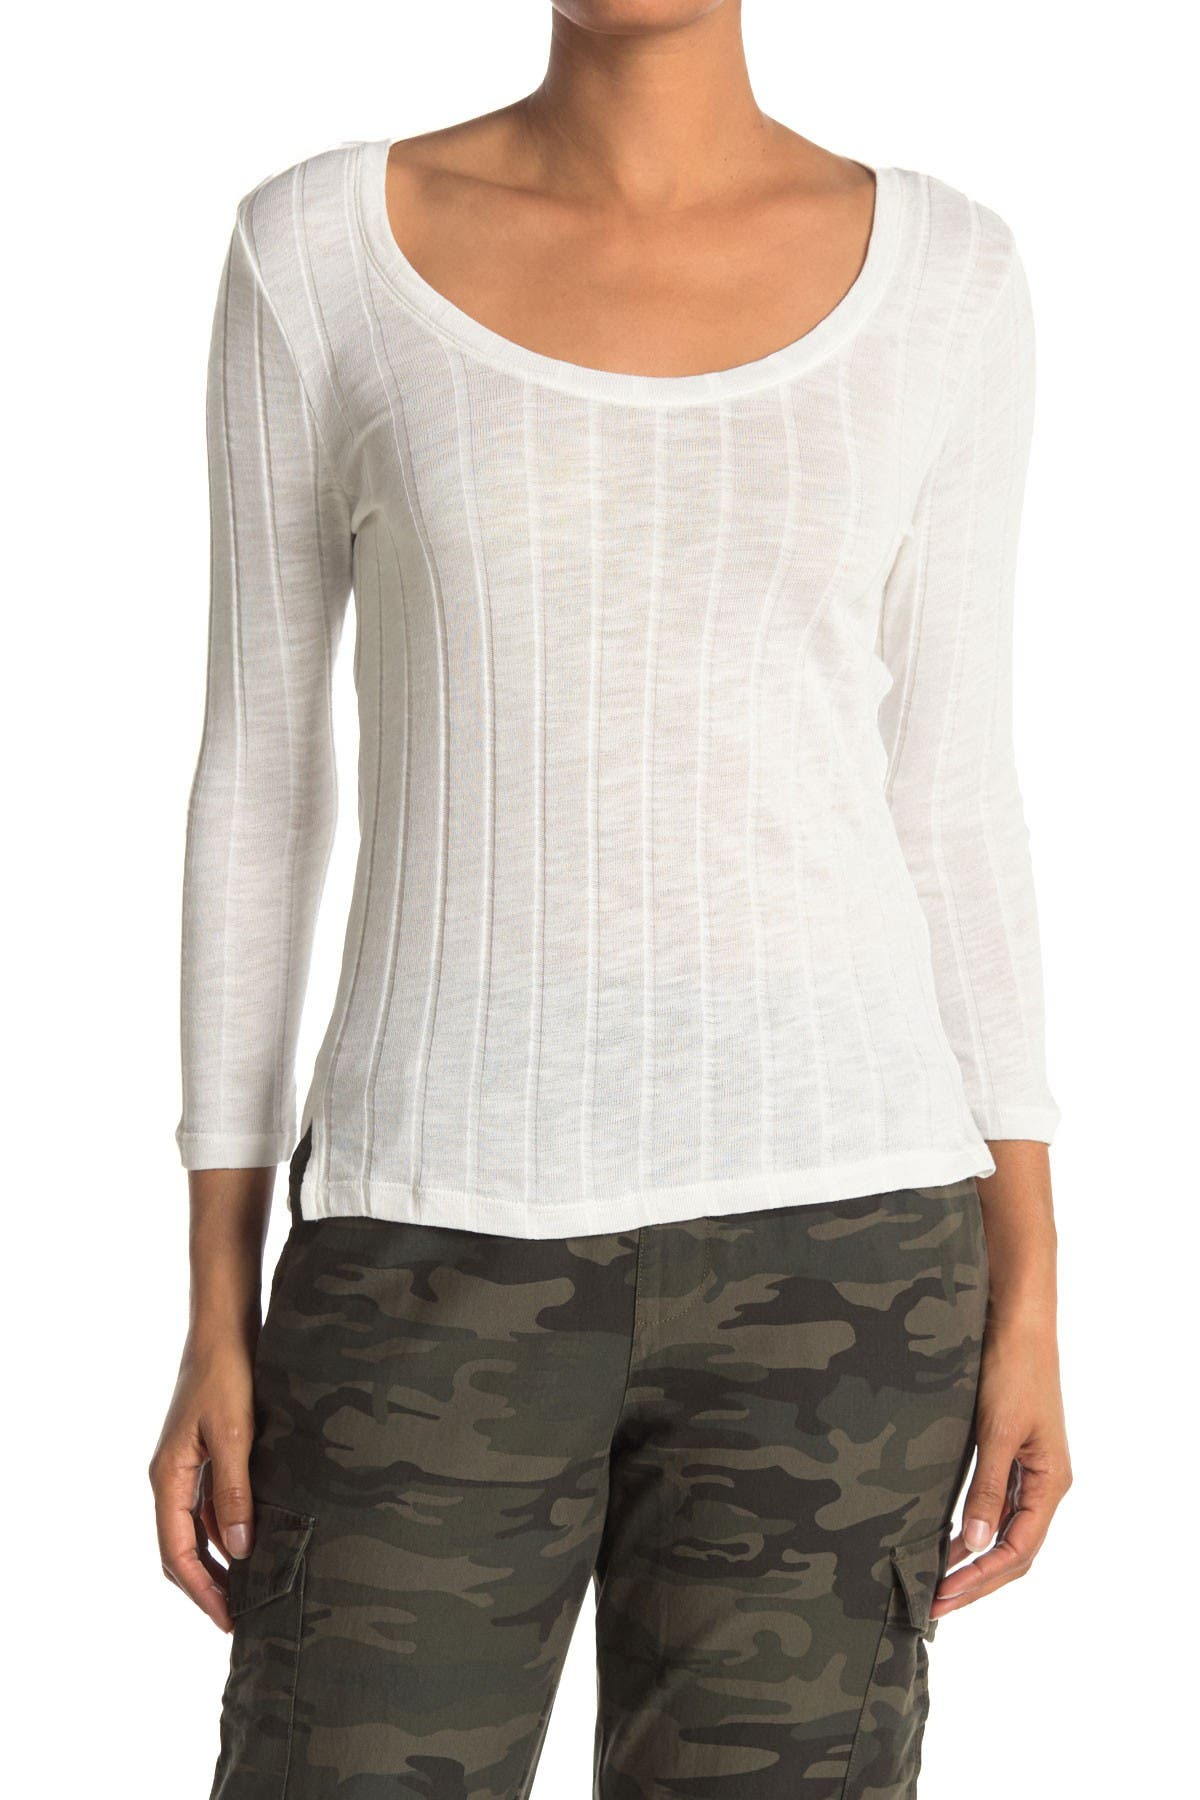 Image of Sanctuary 3/4 Sleeve Ribbed Scoop T-Shirt